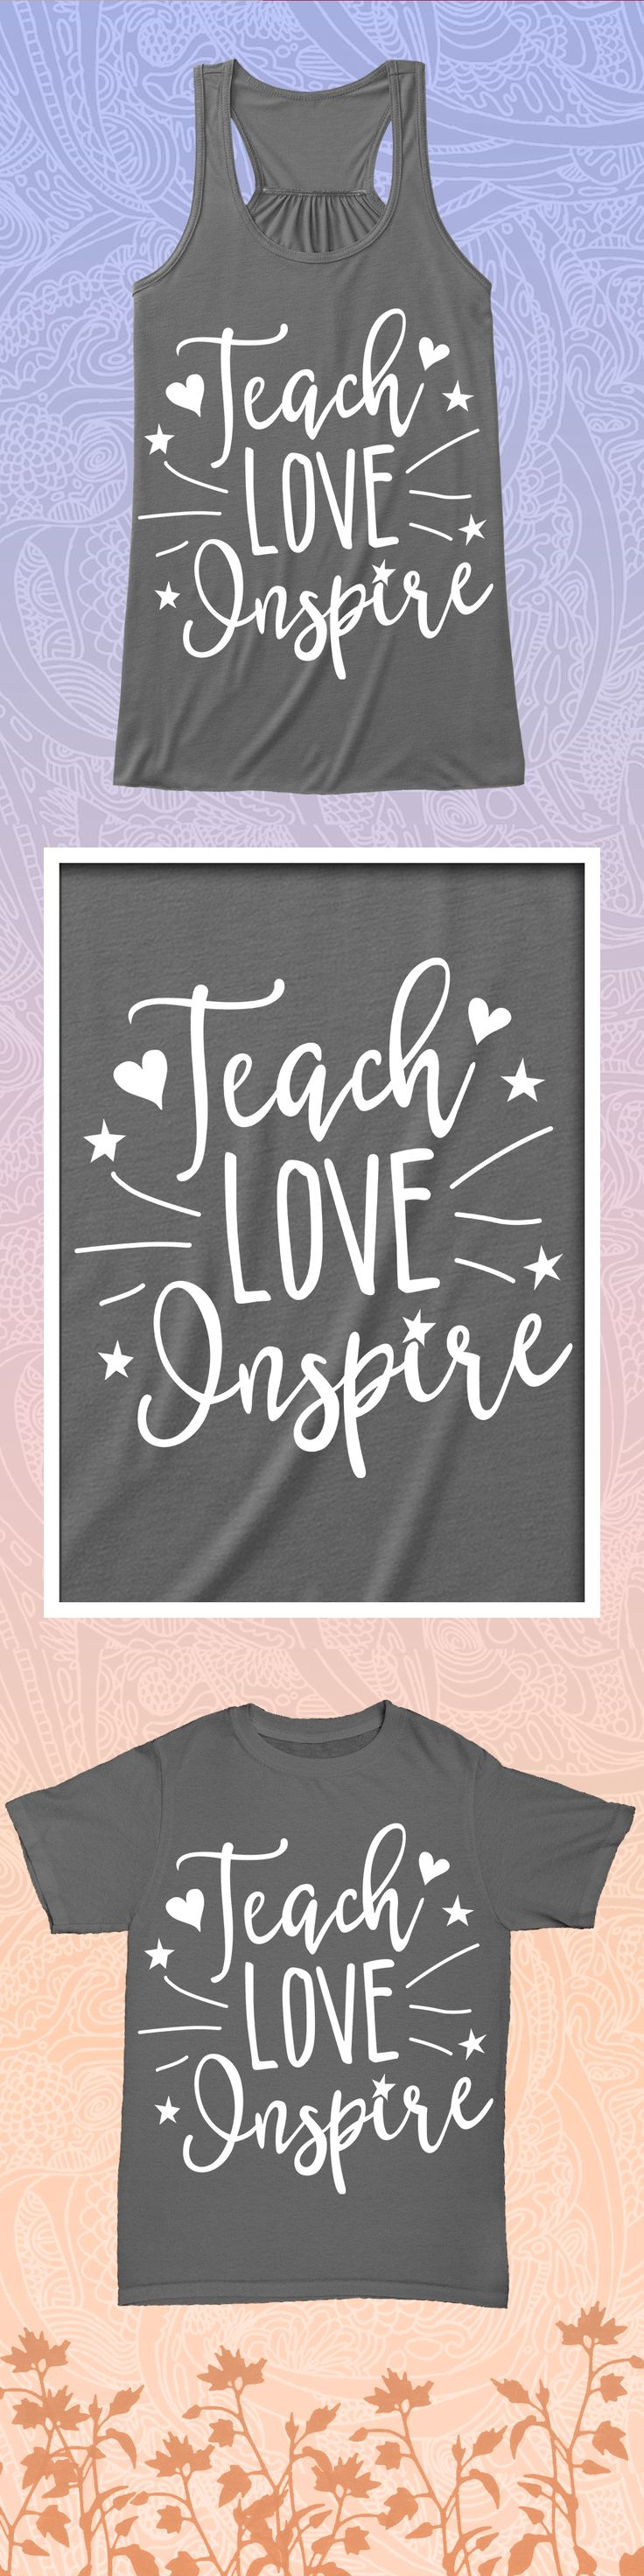 Teach, Love, Inspire - Limited edition. Order 2 or more for friends/family & save on shipping! Makes a great gift!